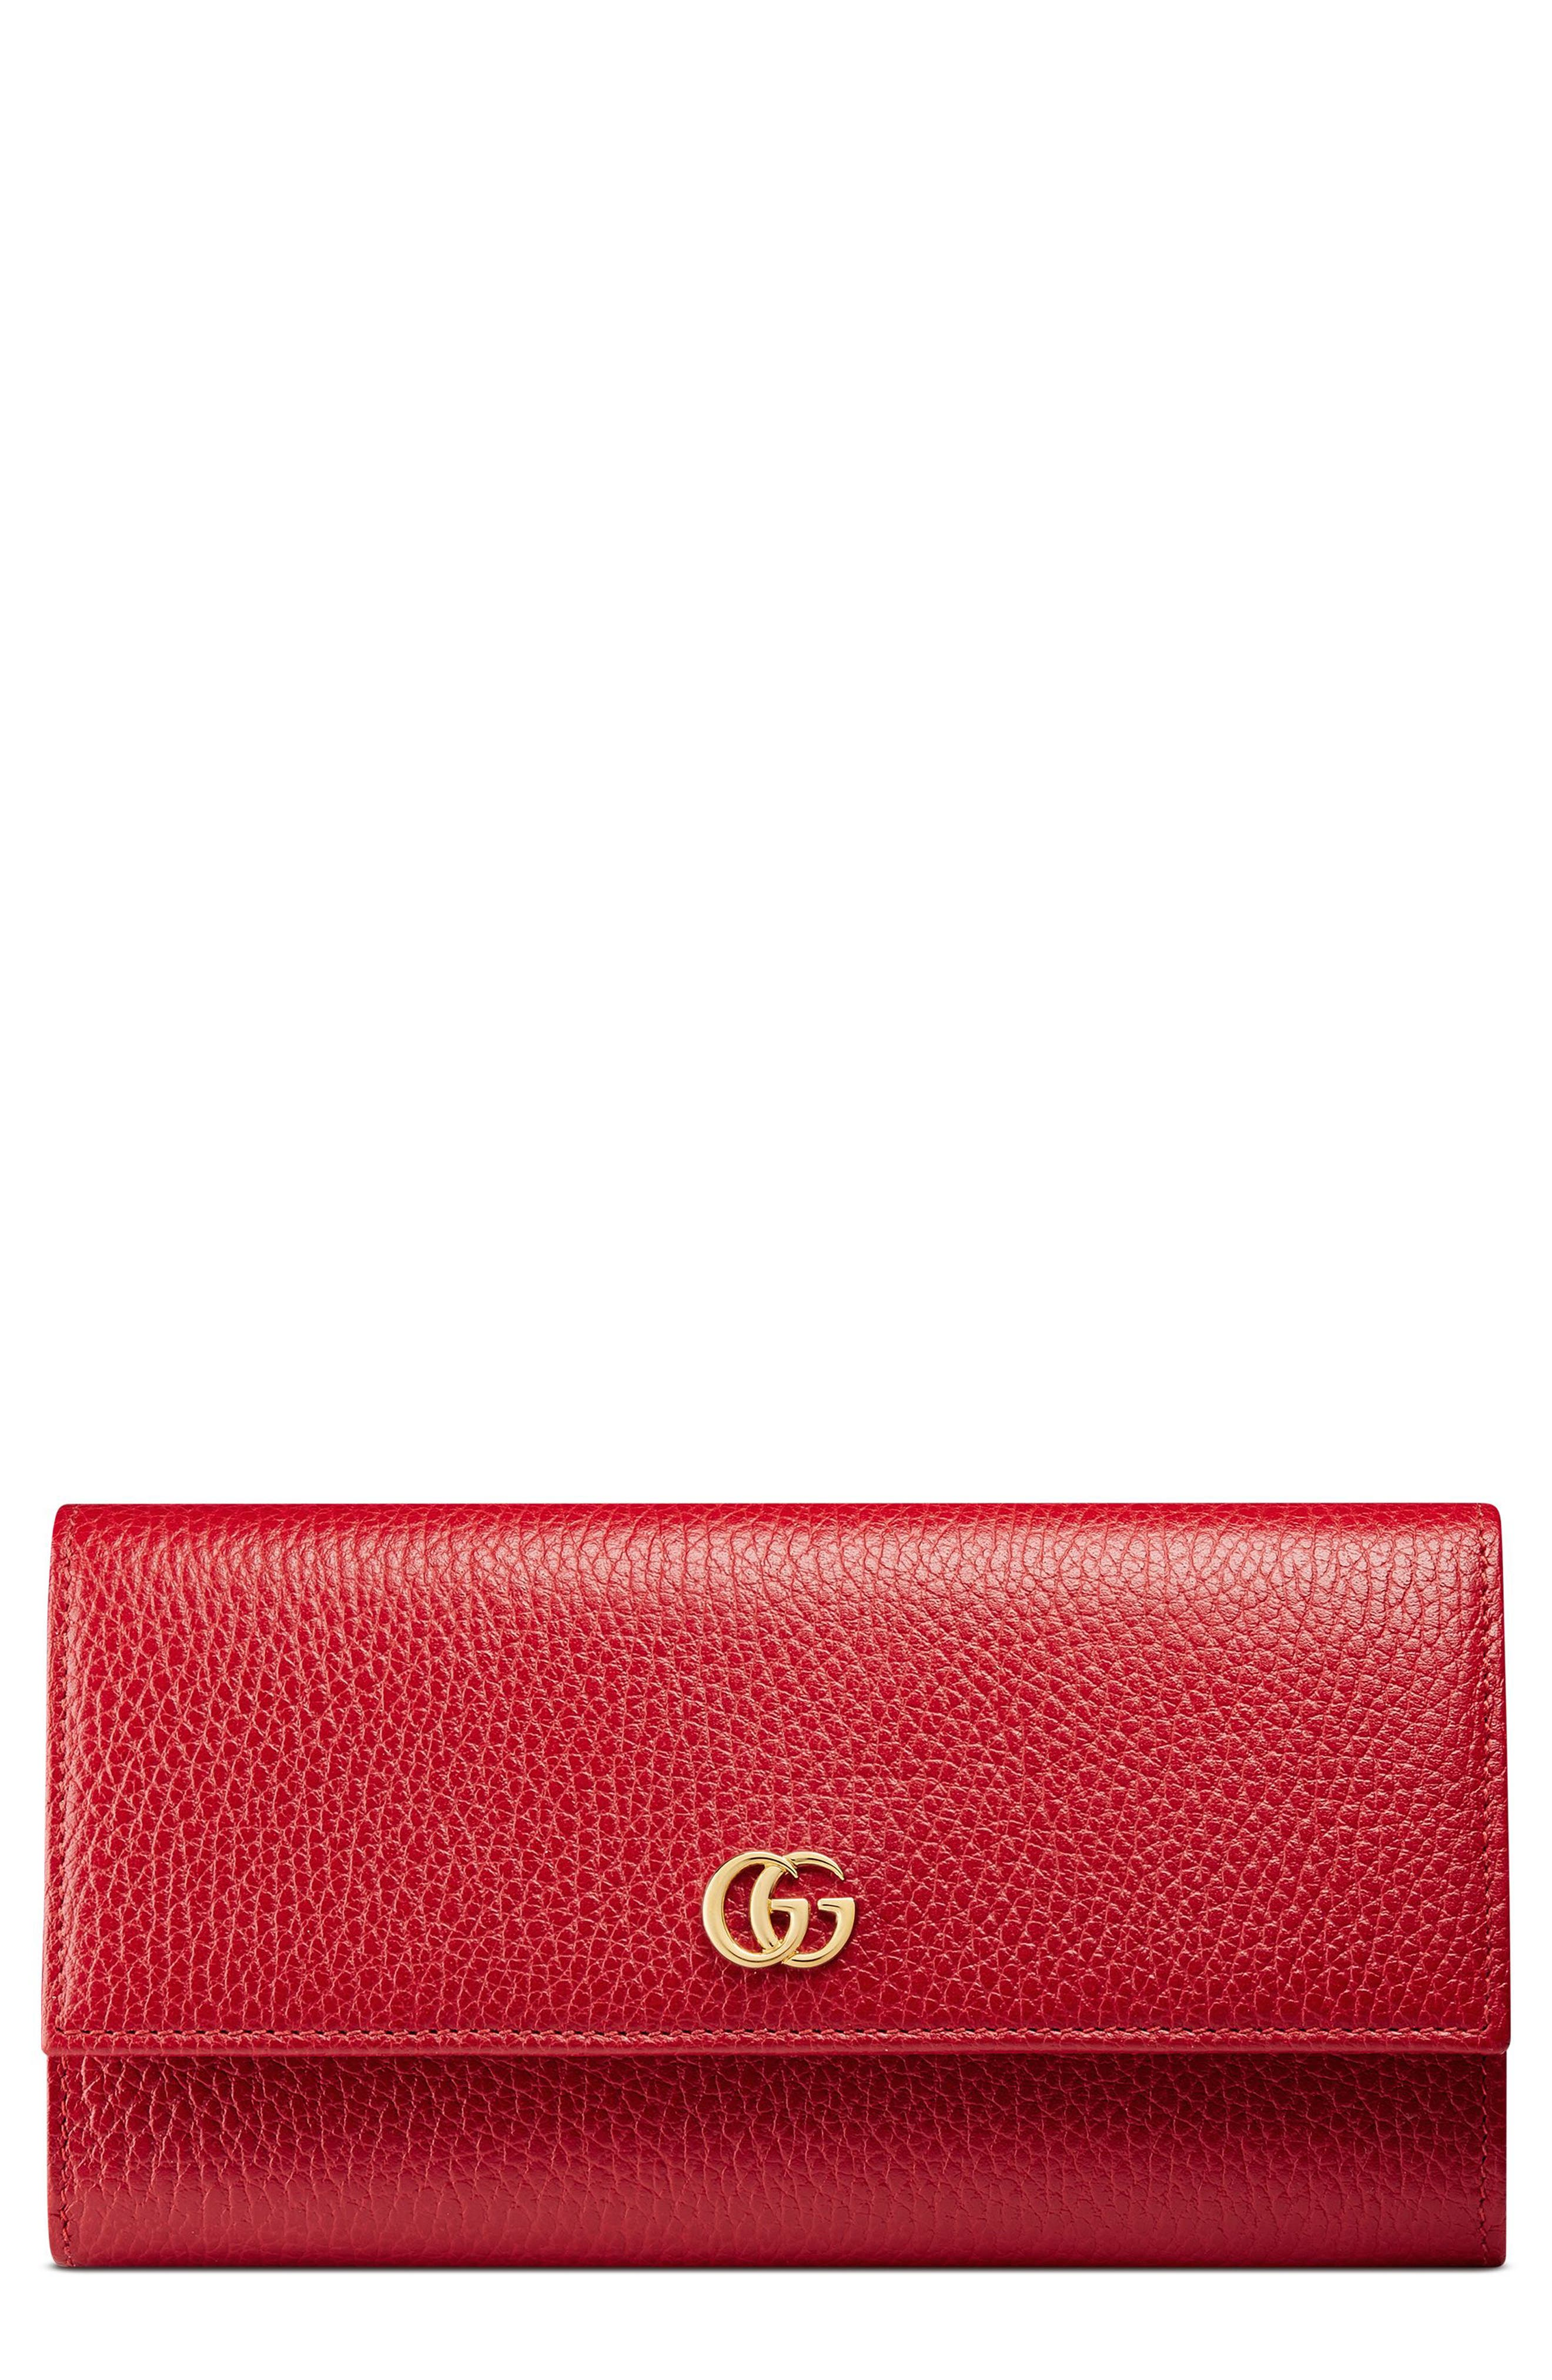 GUCCI, Petite Marmont Leather Continental Wallet, Main thumbnail 1, color, 625